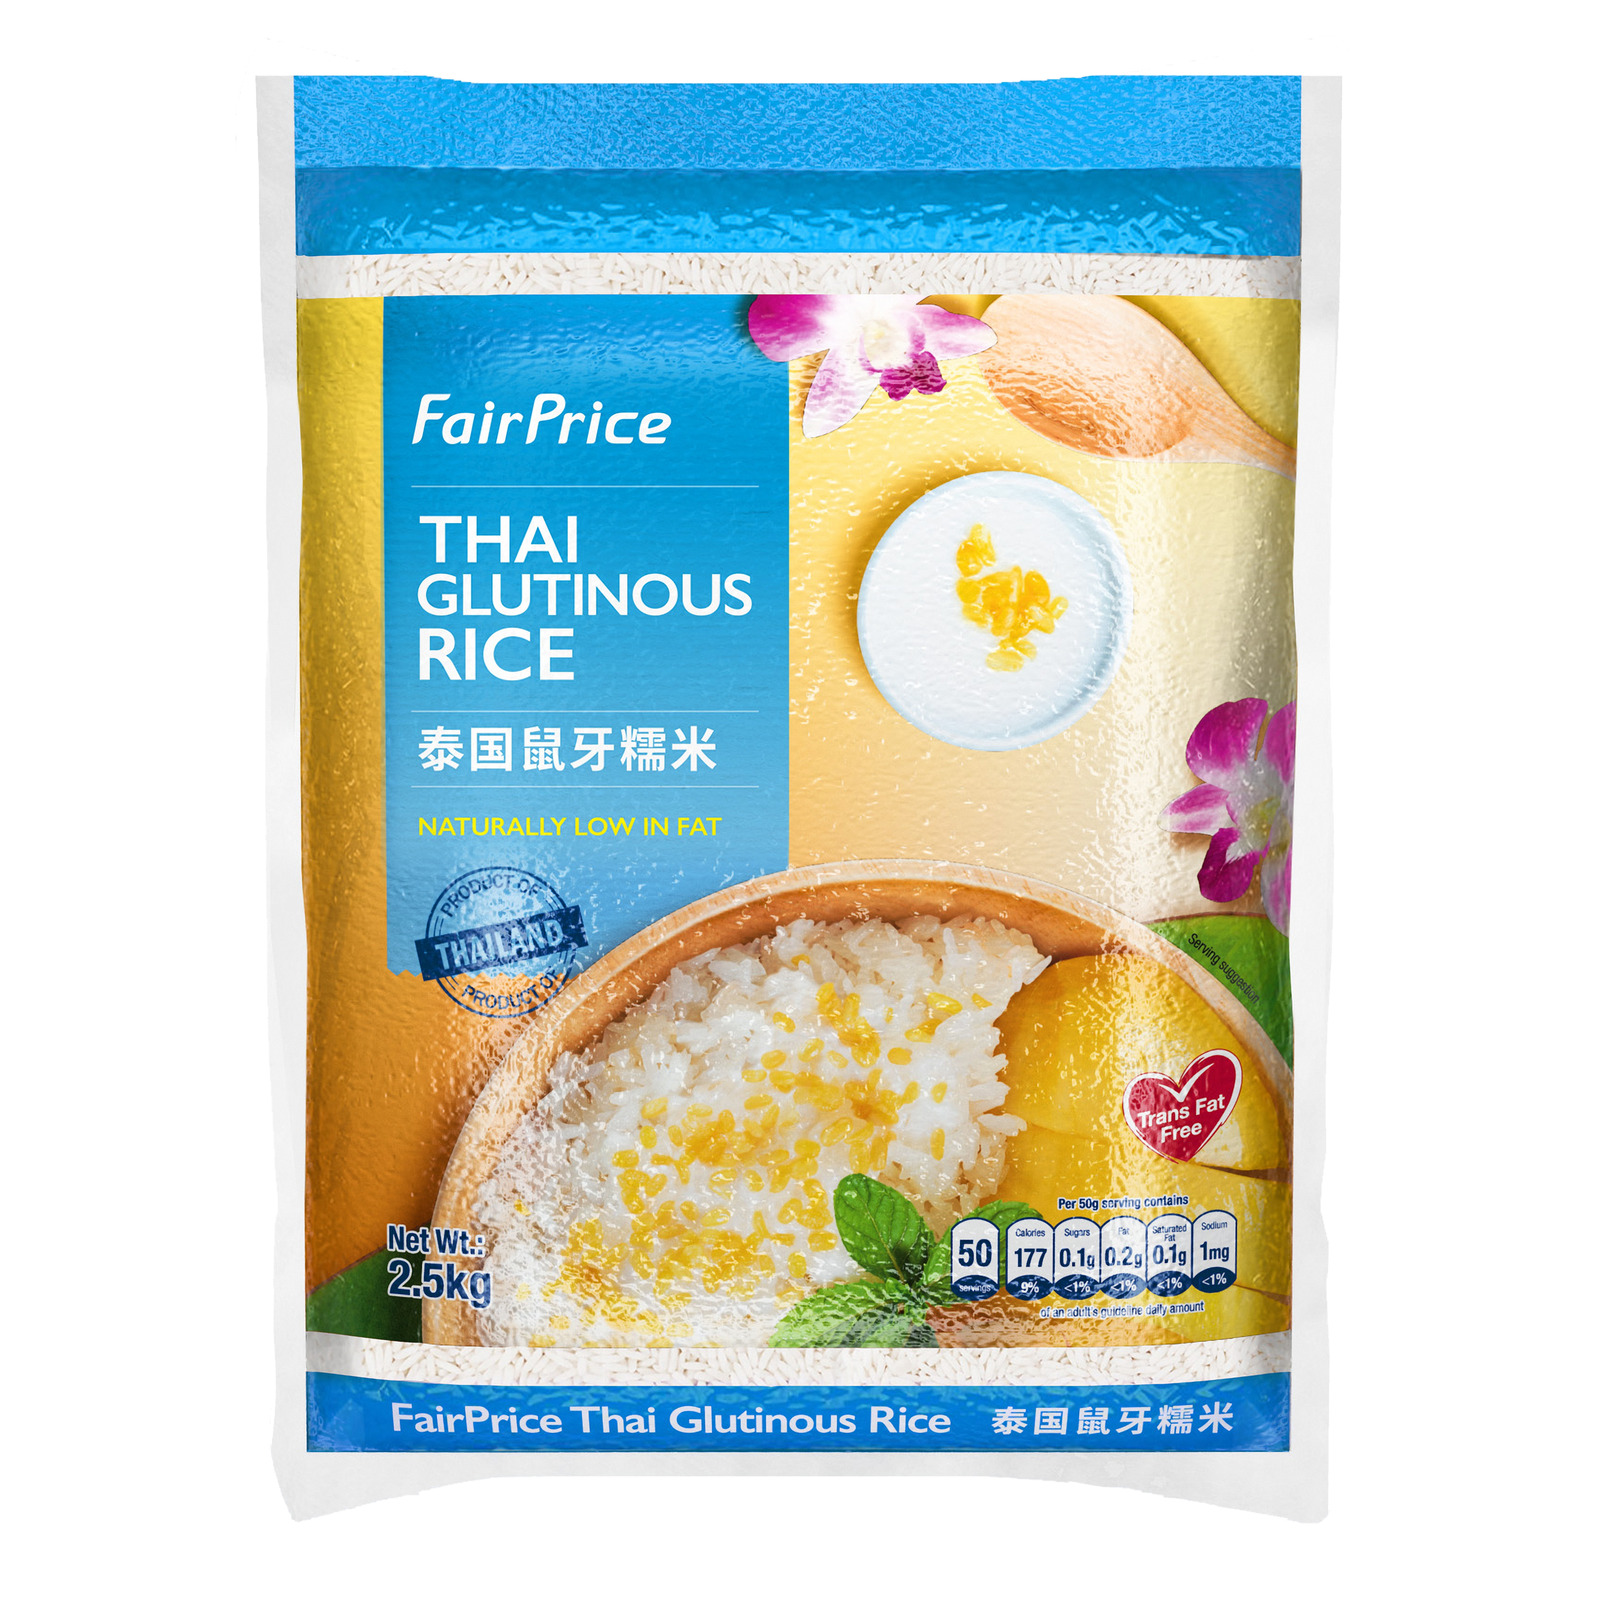 FairPrice Thailand Rice - Glutinous